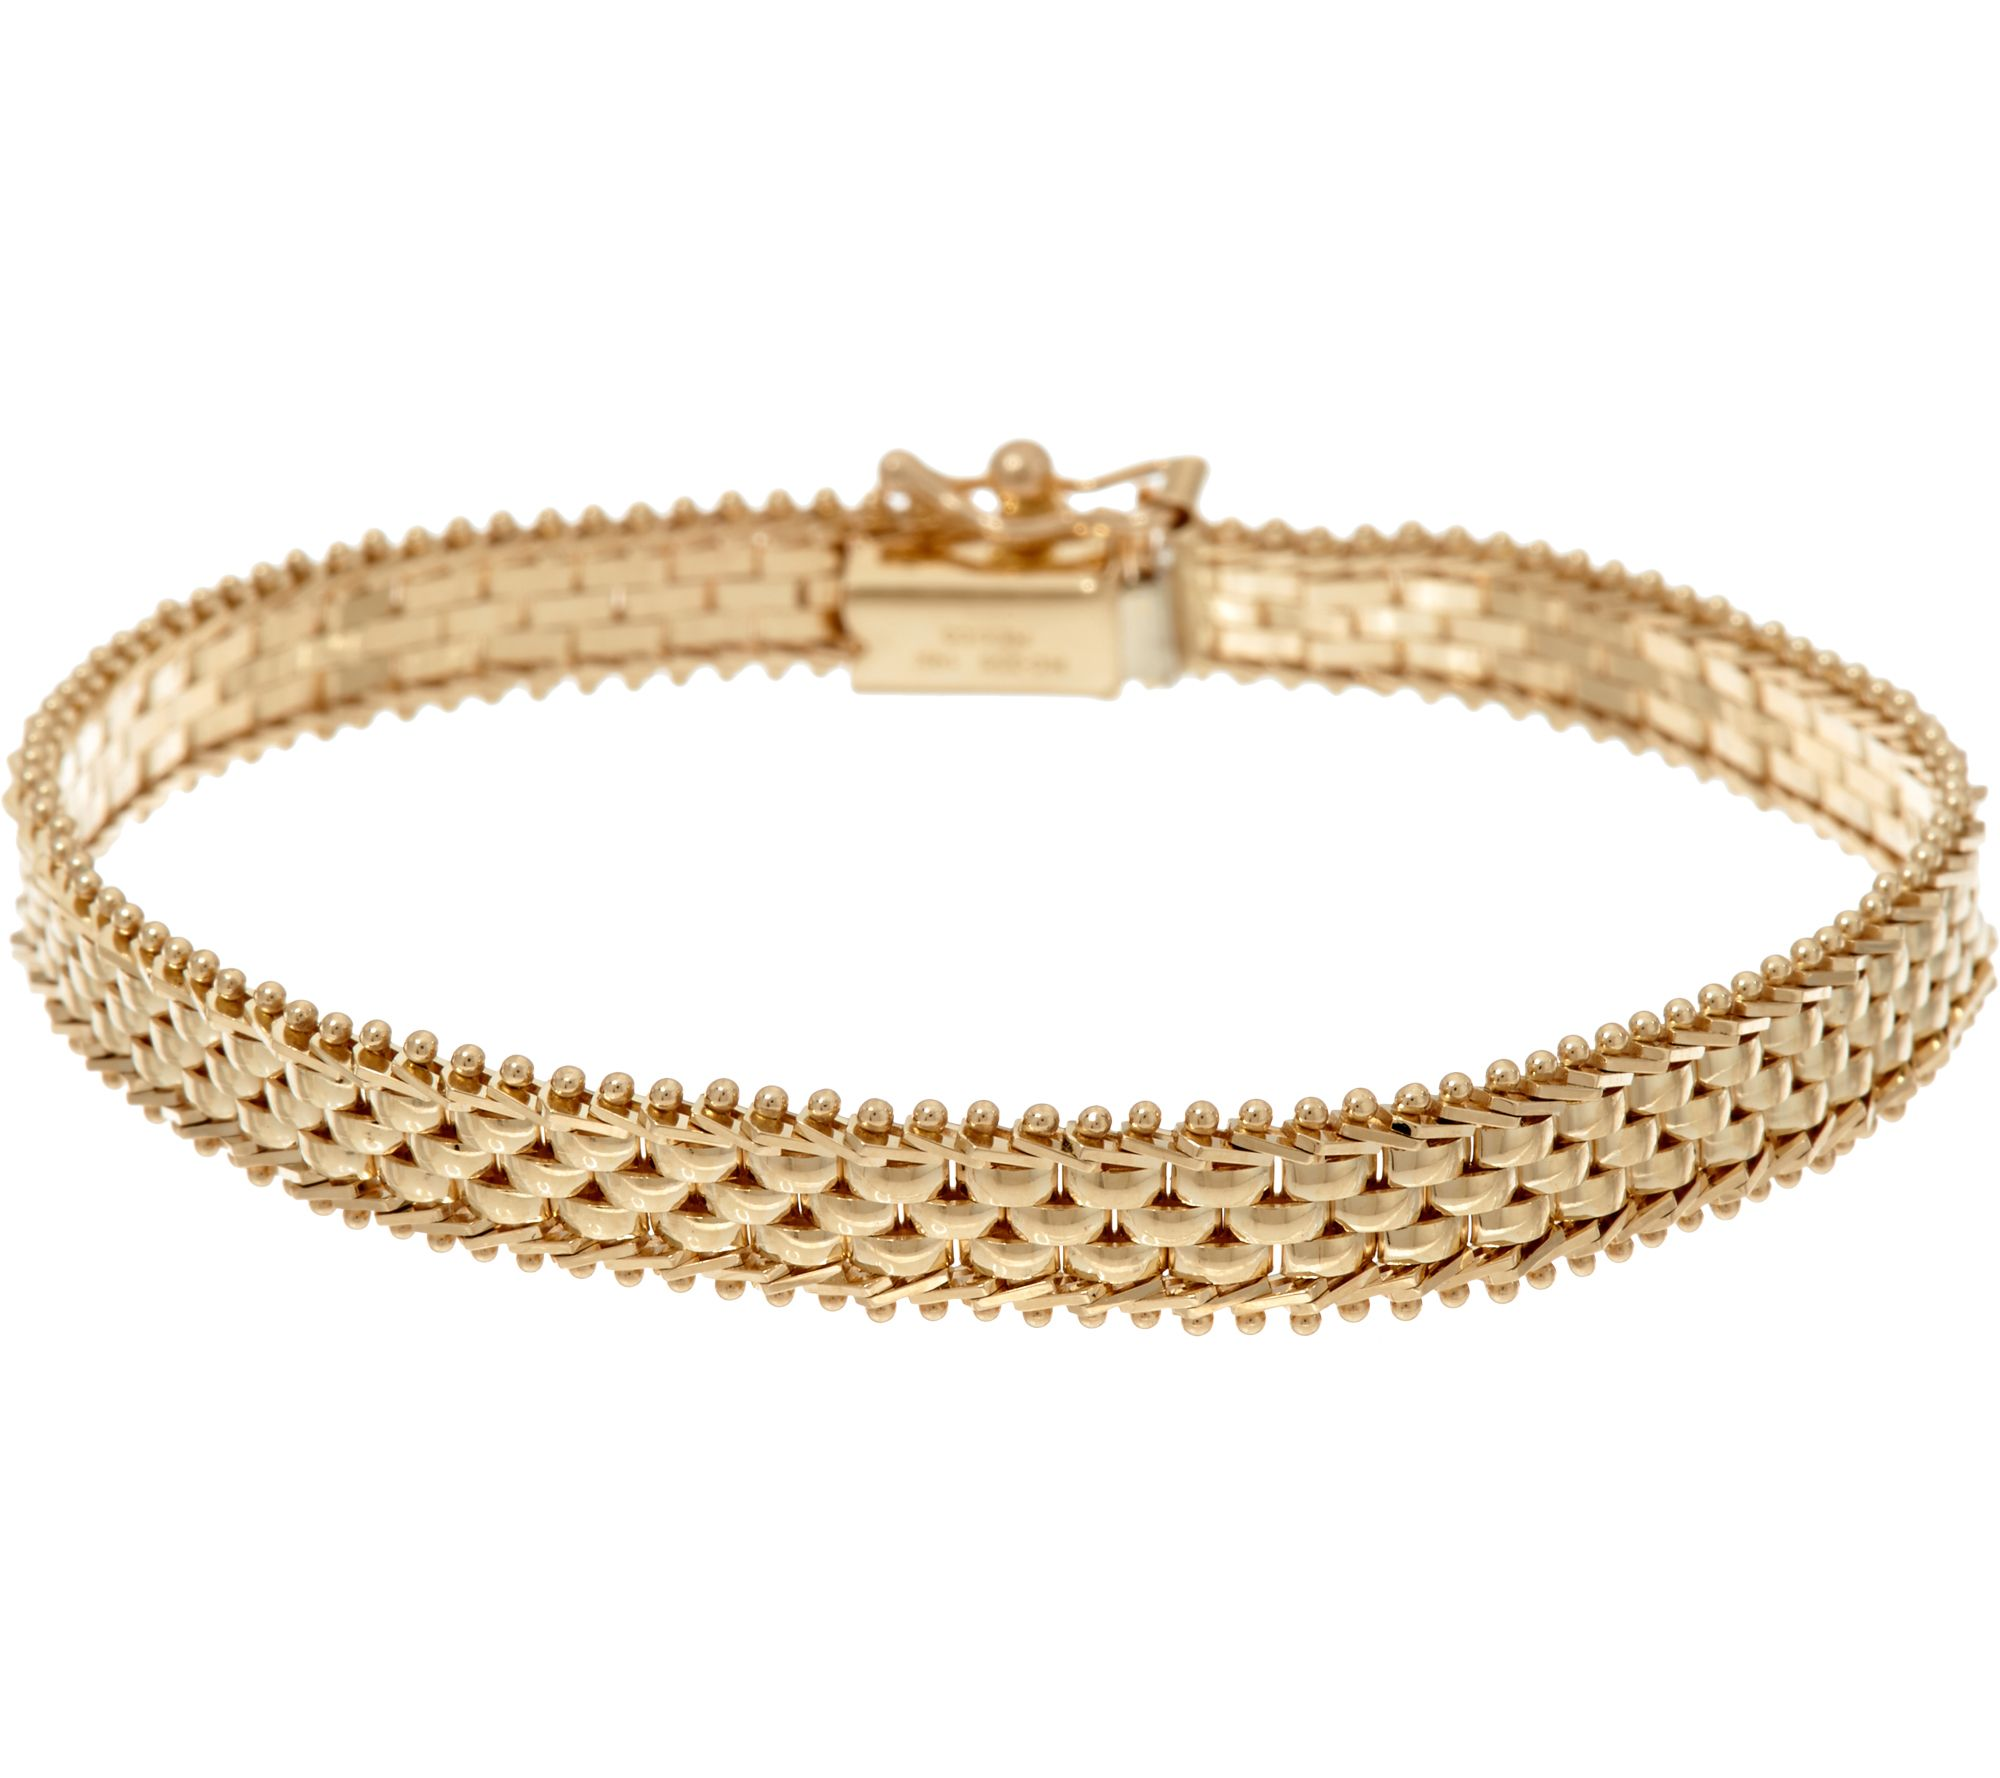 Imperial Gold 6 3 4 Panther Link Riccio Bracelet 14k 10 3g Page 1 Qvc